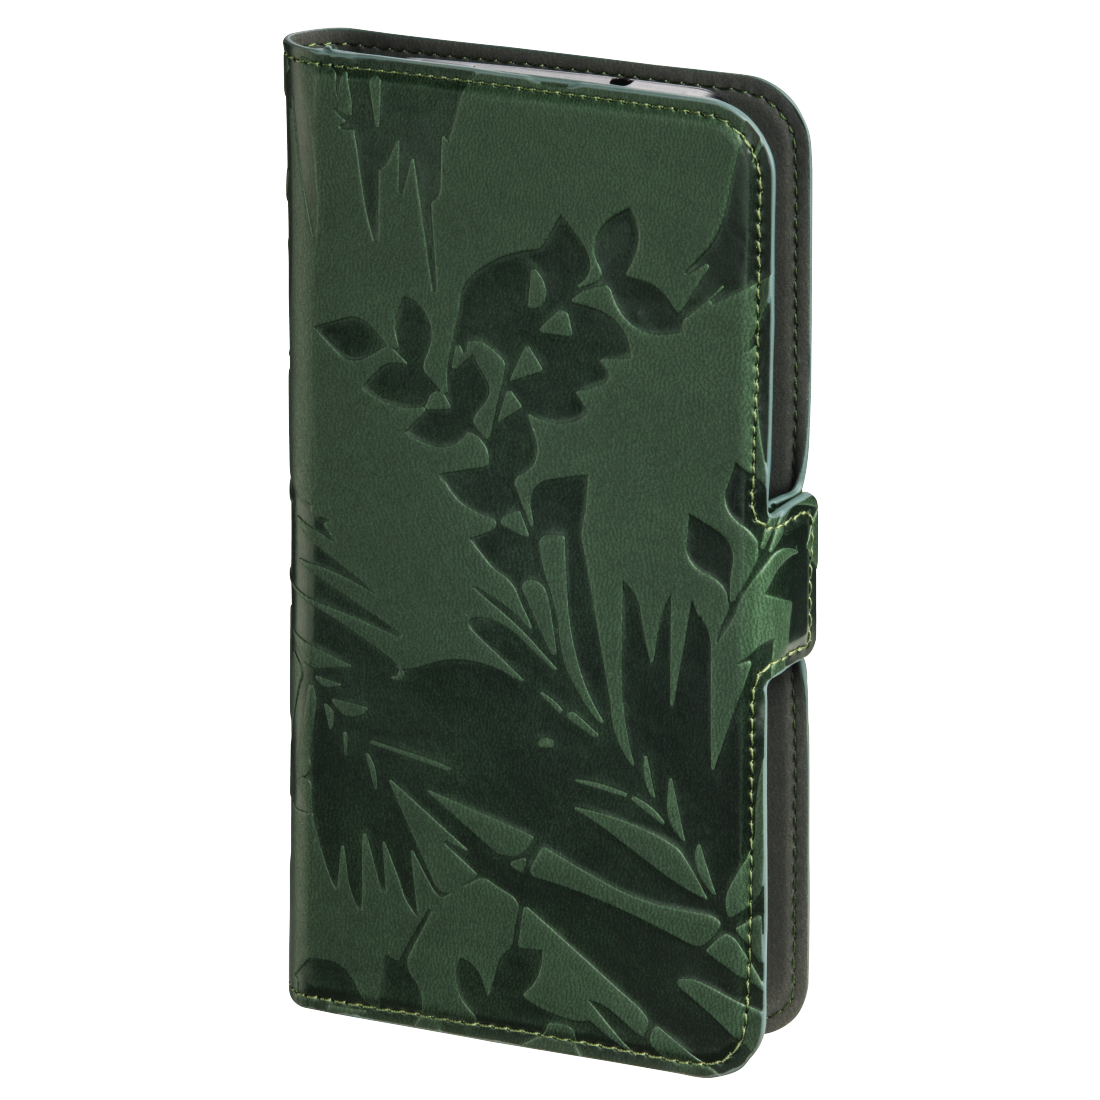 abx2 High-Res Image 2 - Hama, Smart Move - Jungle Leaves Booklet, size XXL (5.1 – 5.8), dark green